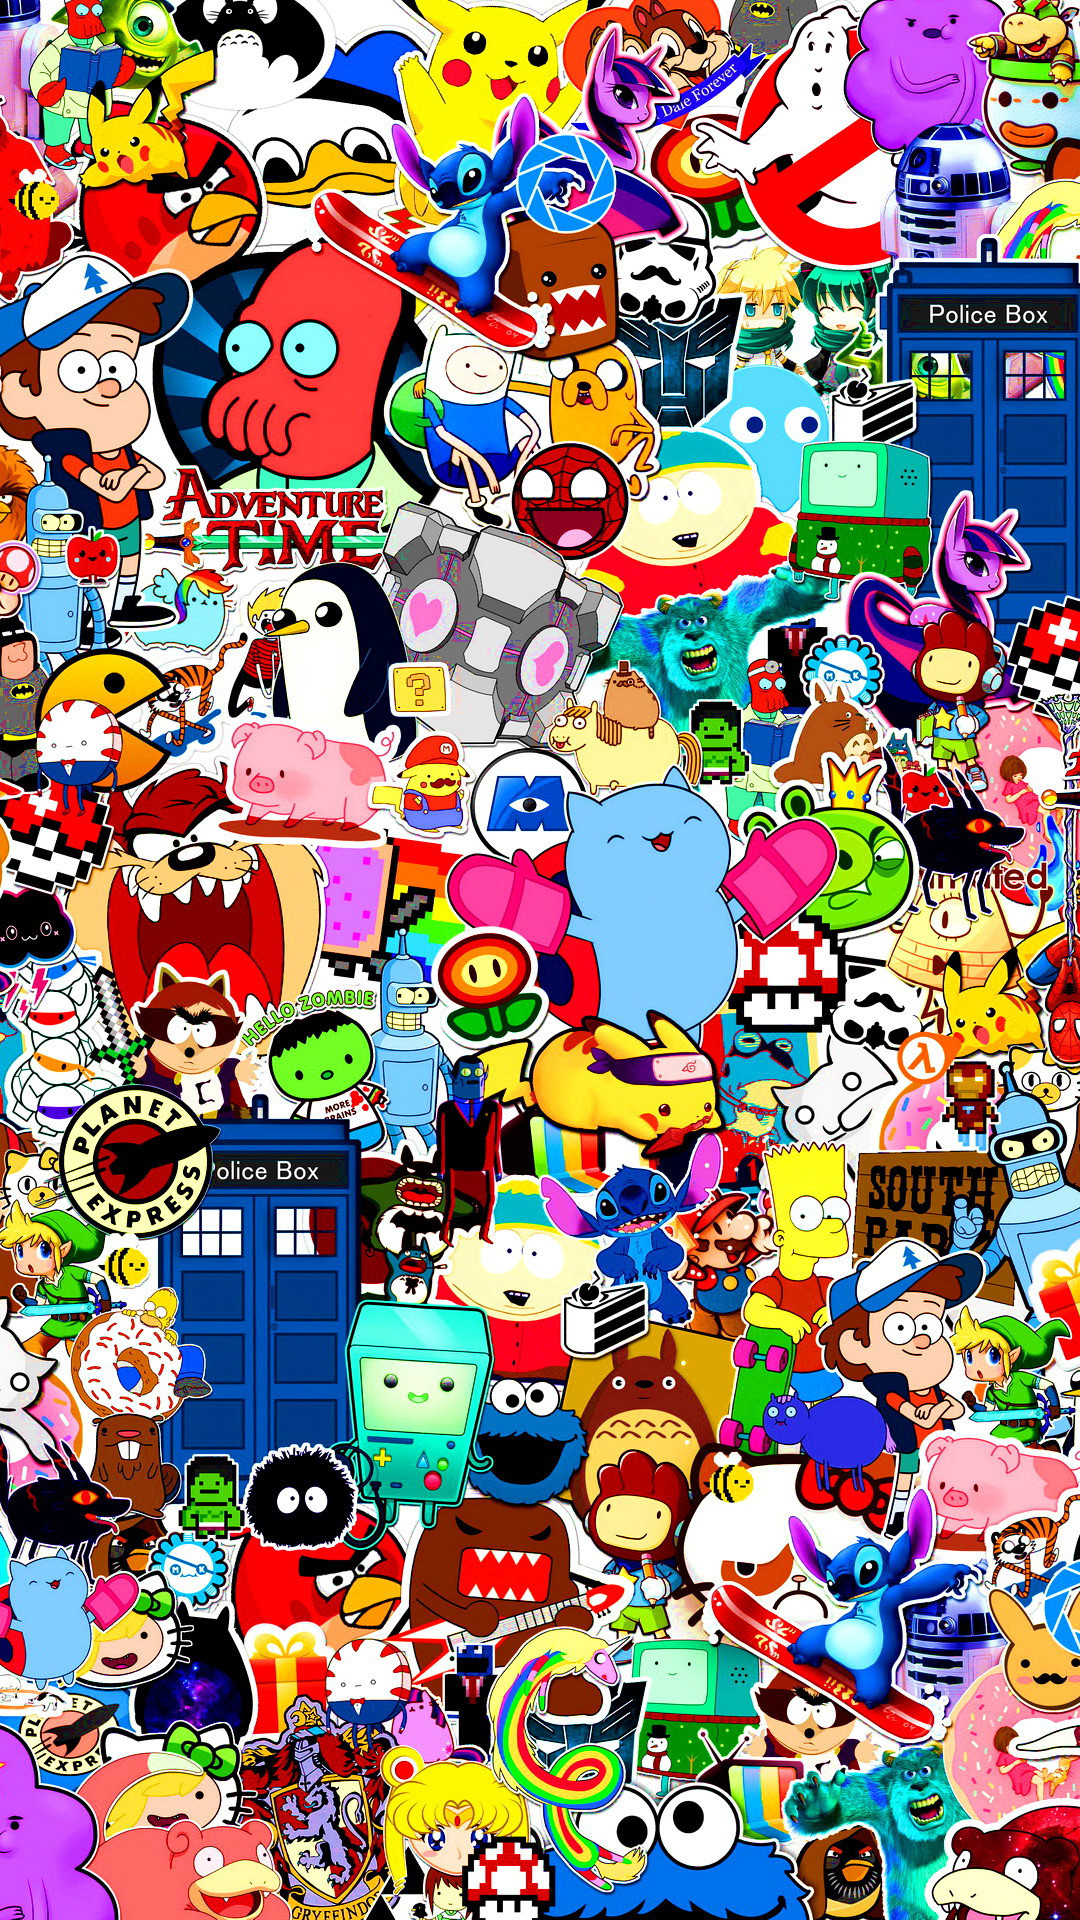 HD Wallpaper Cartoon Characters 70 images